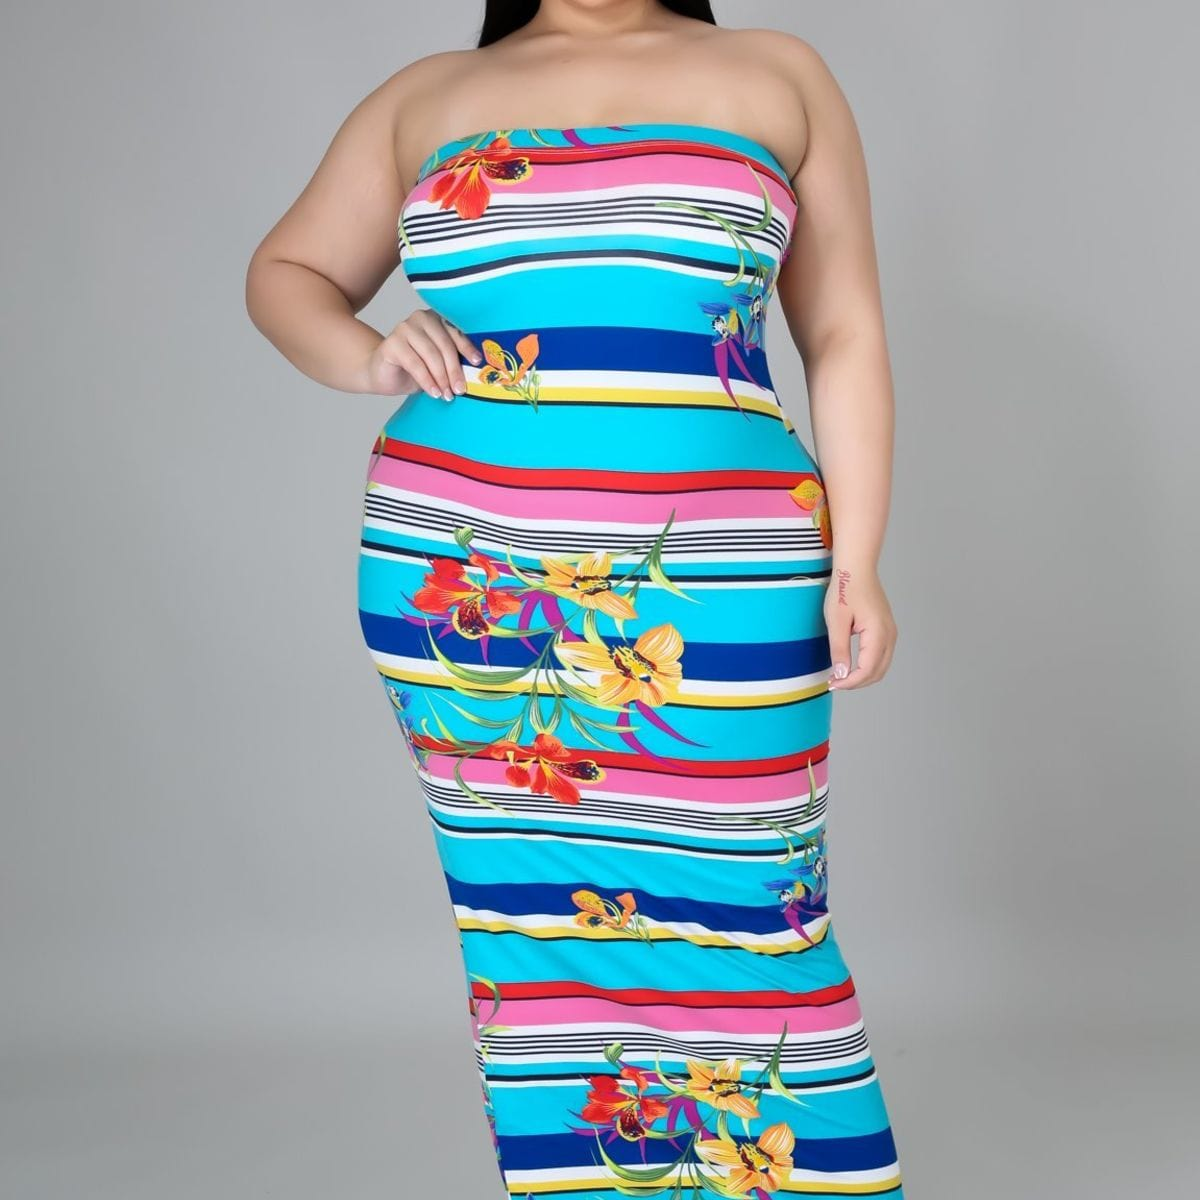 Plus Size Strapless Dress - Posh Shoppe